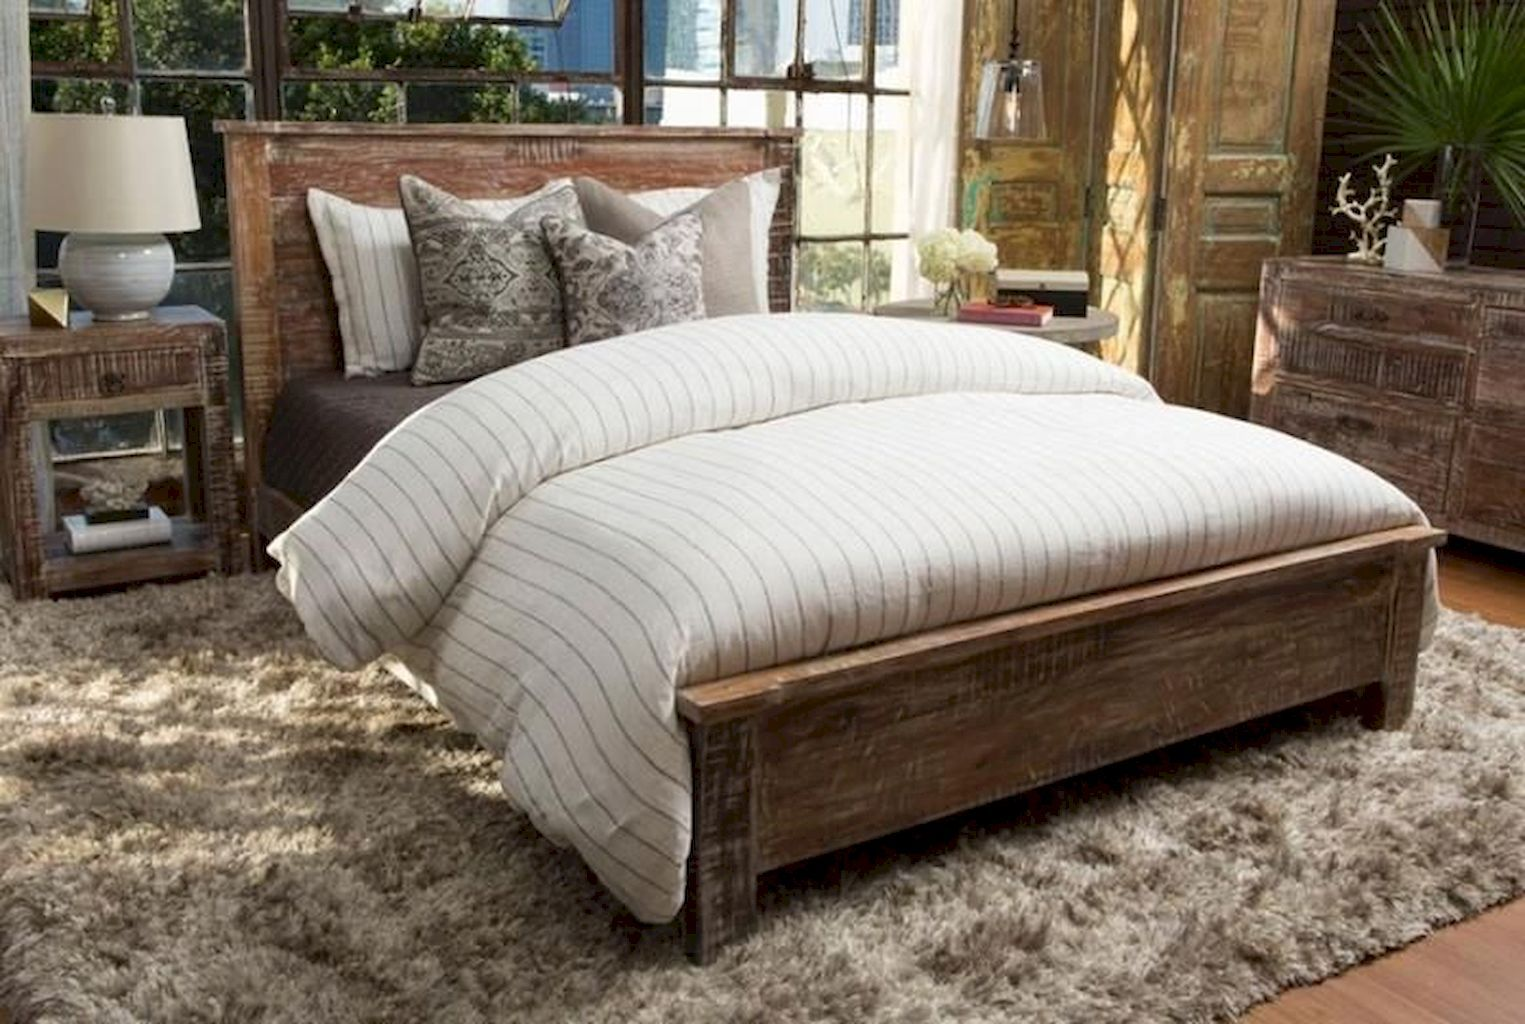 Bedroom Trends In 2018 Showing Off Beautiful Ideas With Images